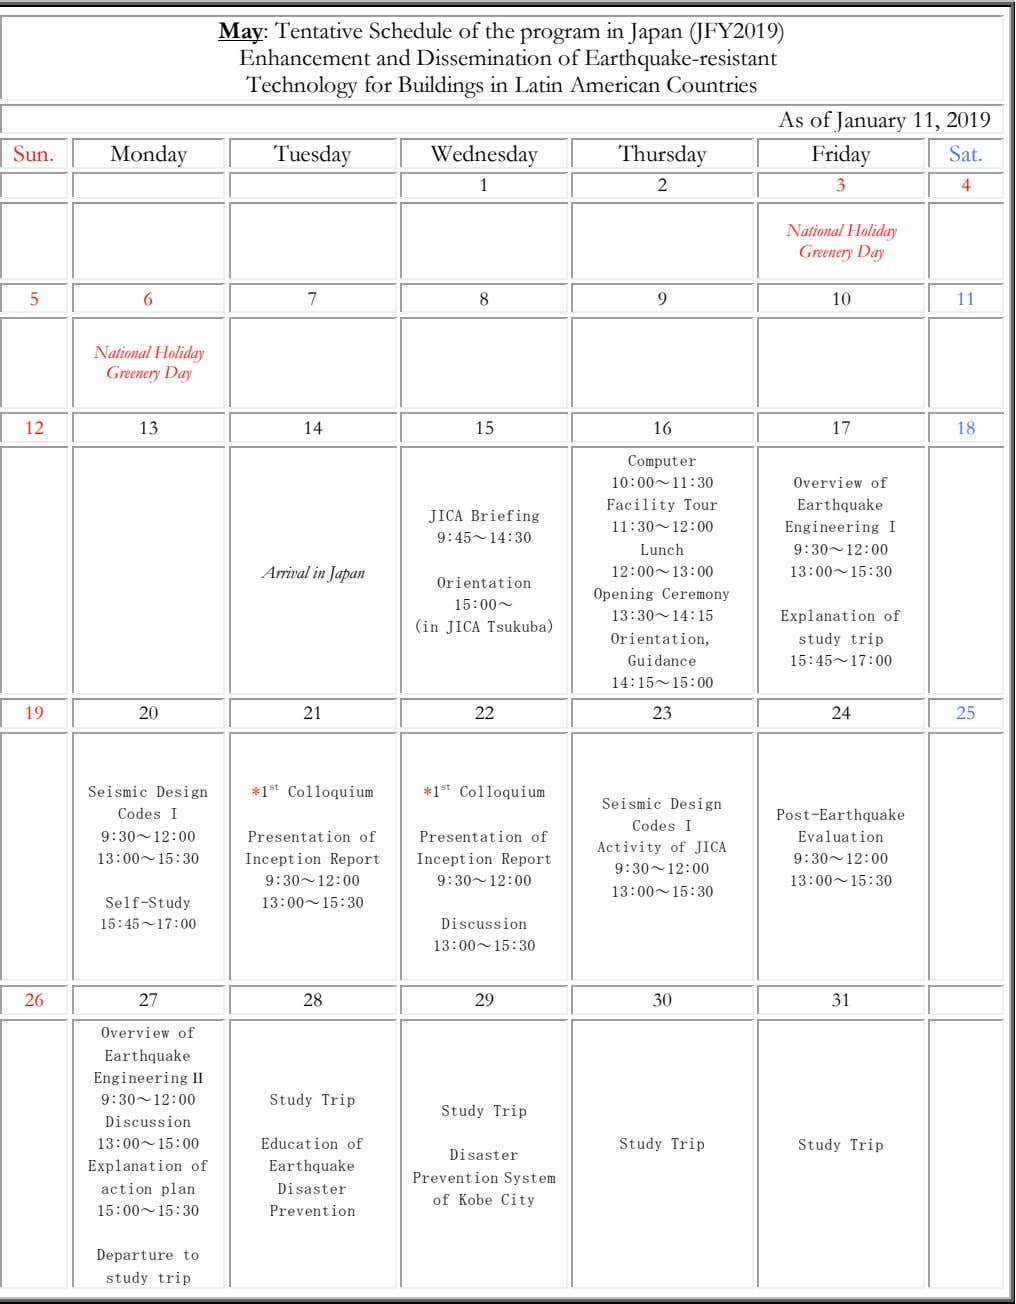 May: Tentative Schedule of the program in Japan (JFY2019) Enhancement and Dissemination of Earthquake-resistant